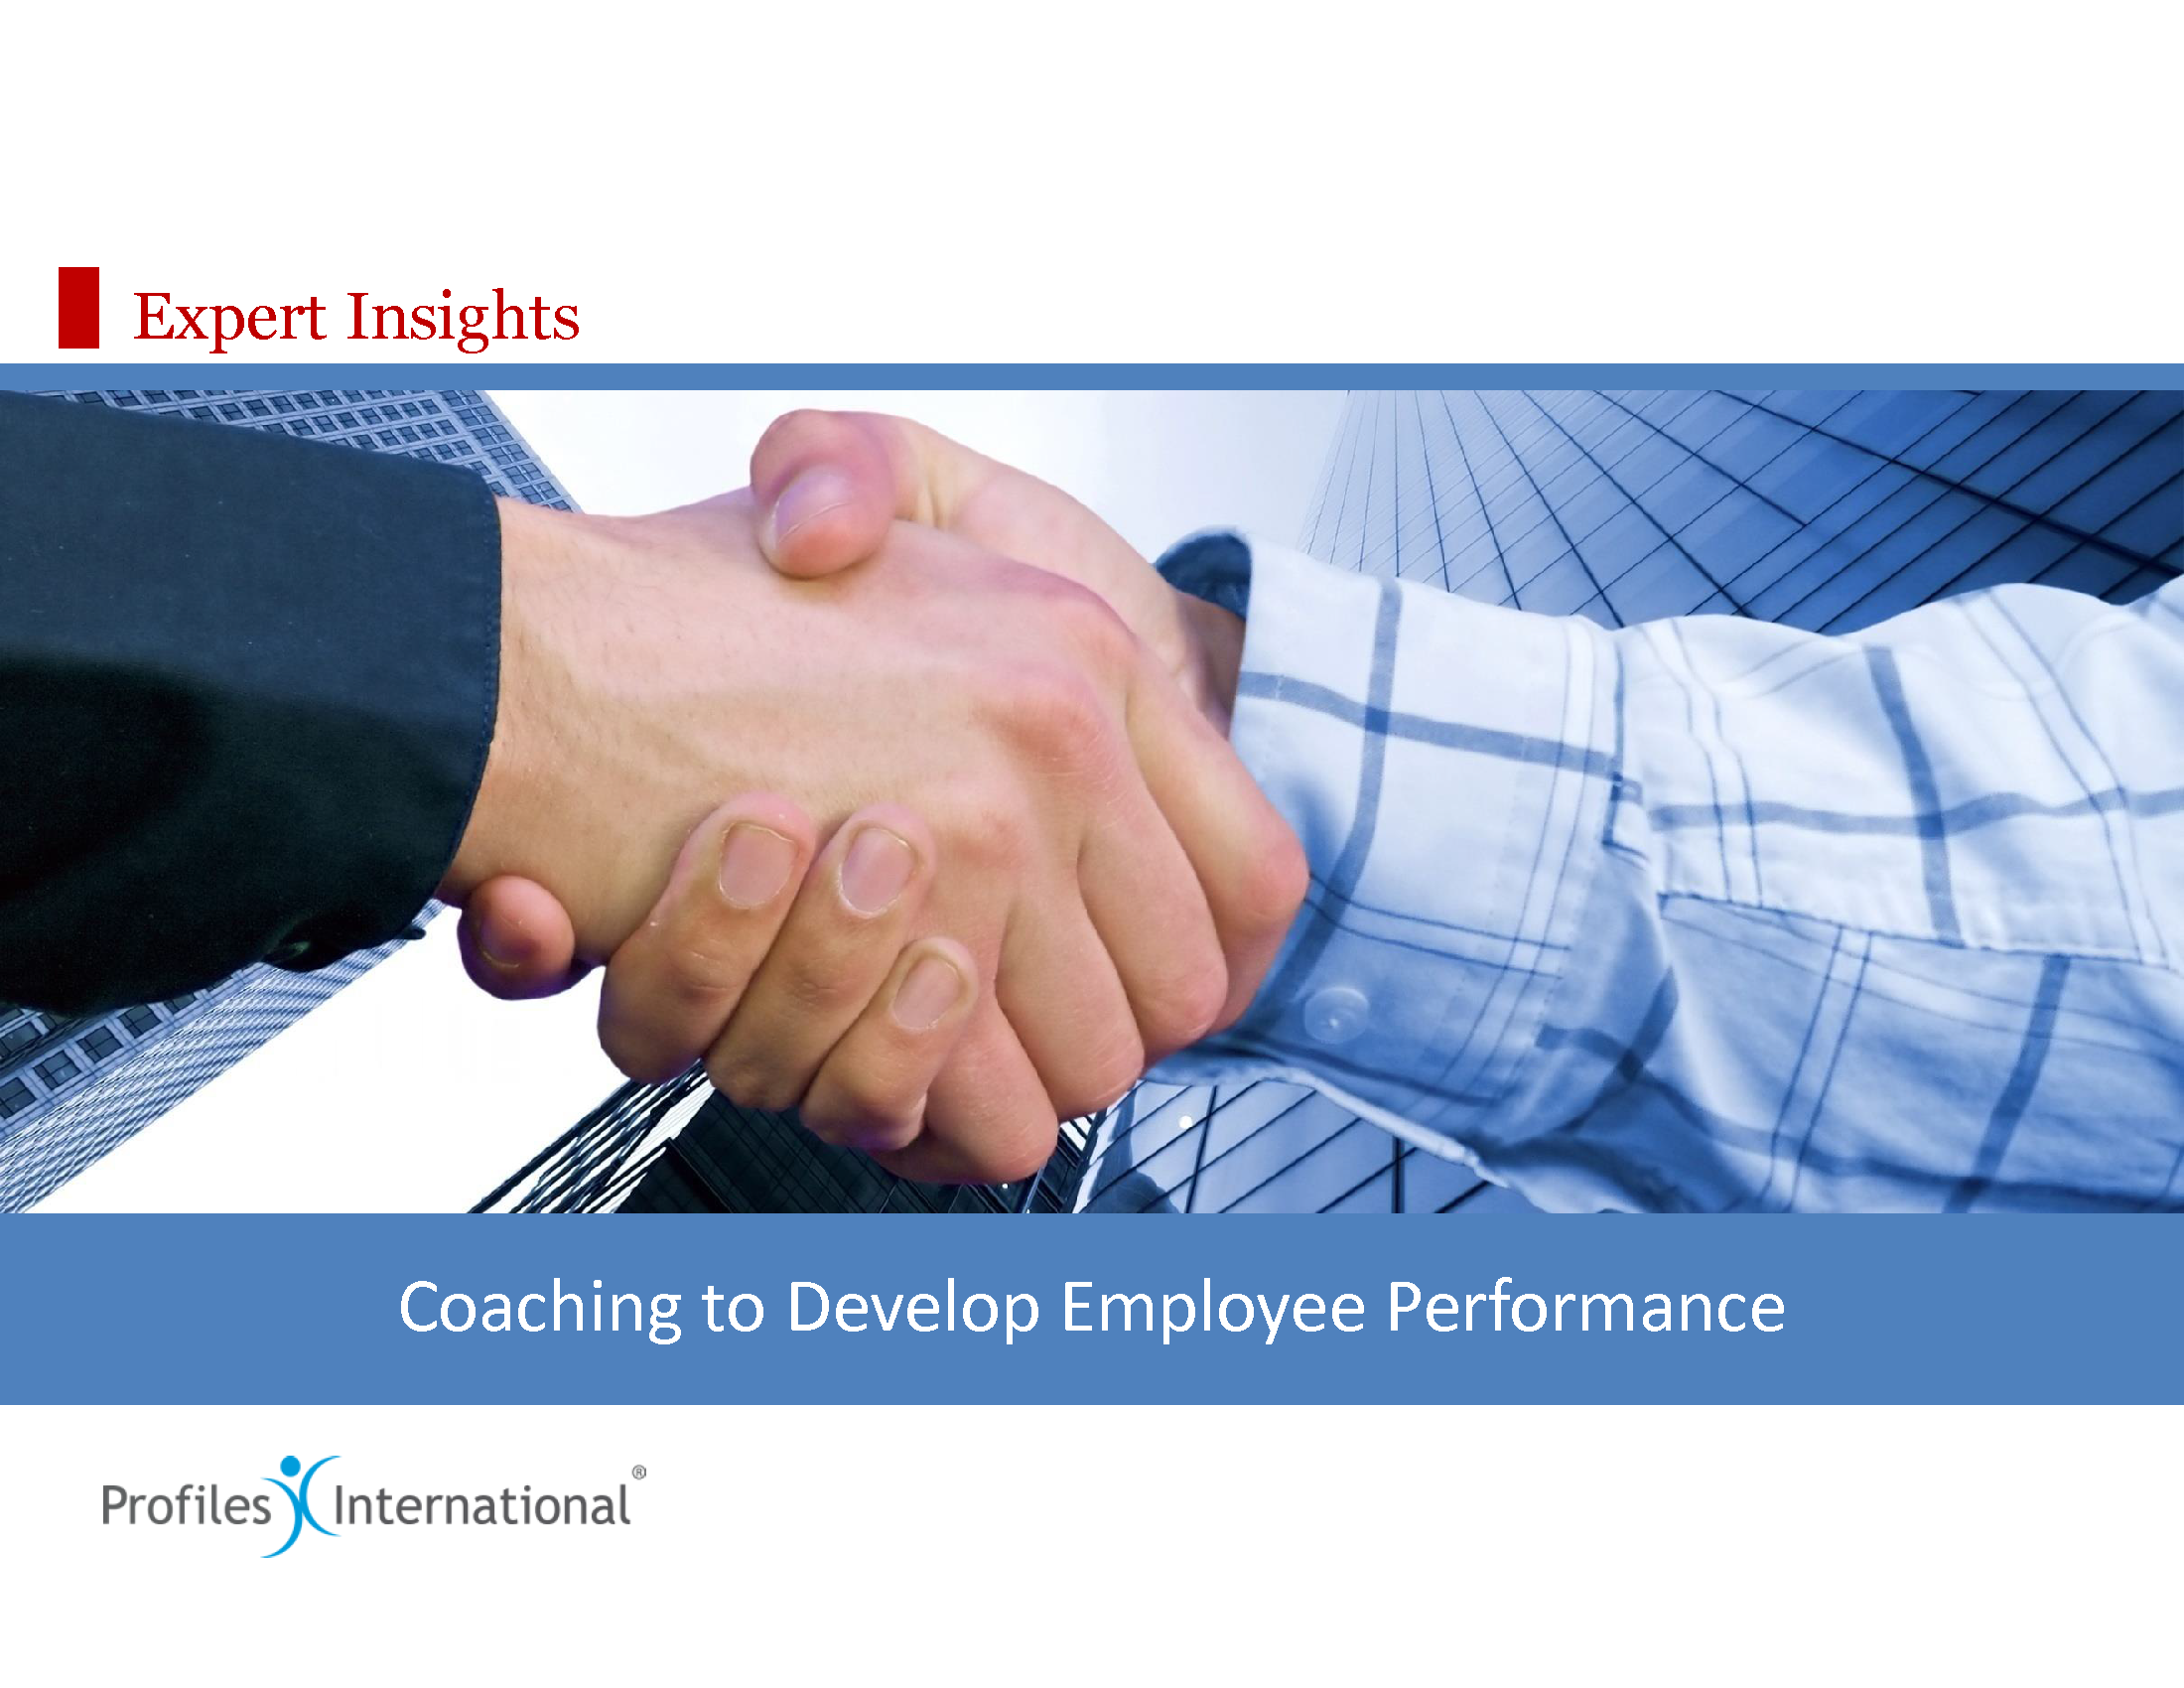 07-Coaching to Develop Employee Performance